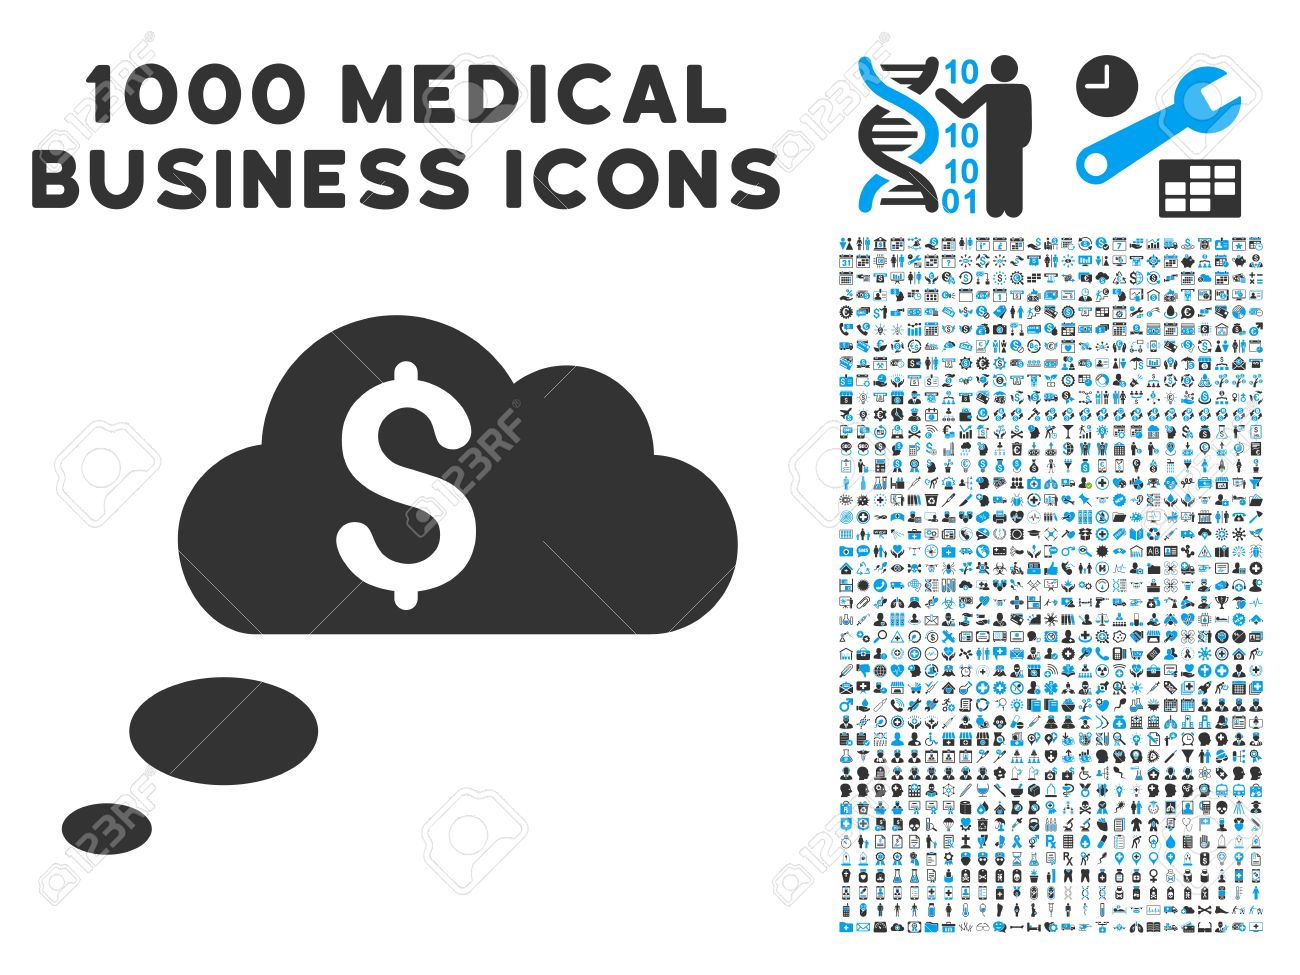 Richness Dream Clouds Icon With 1000 Medical Business Gray And.